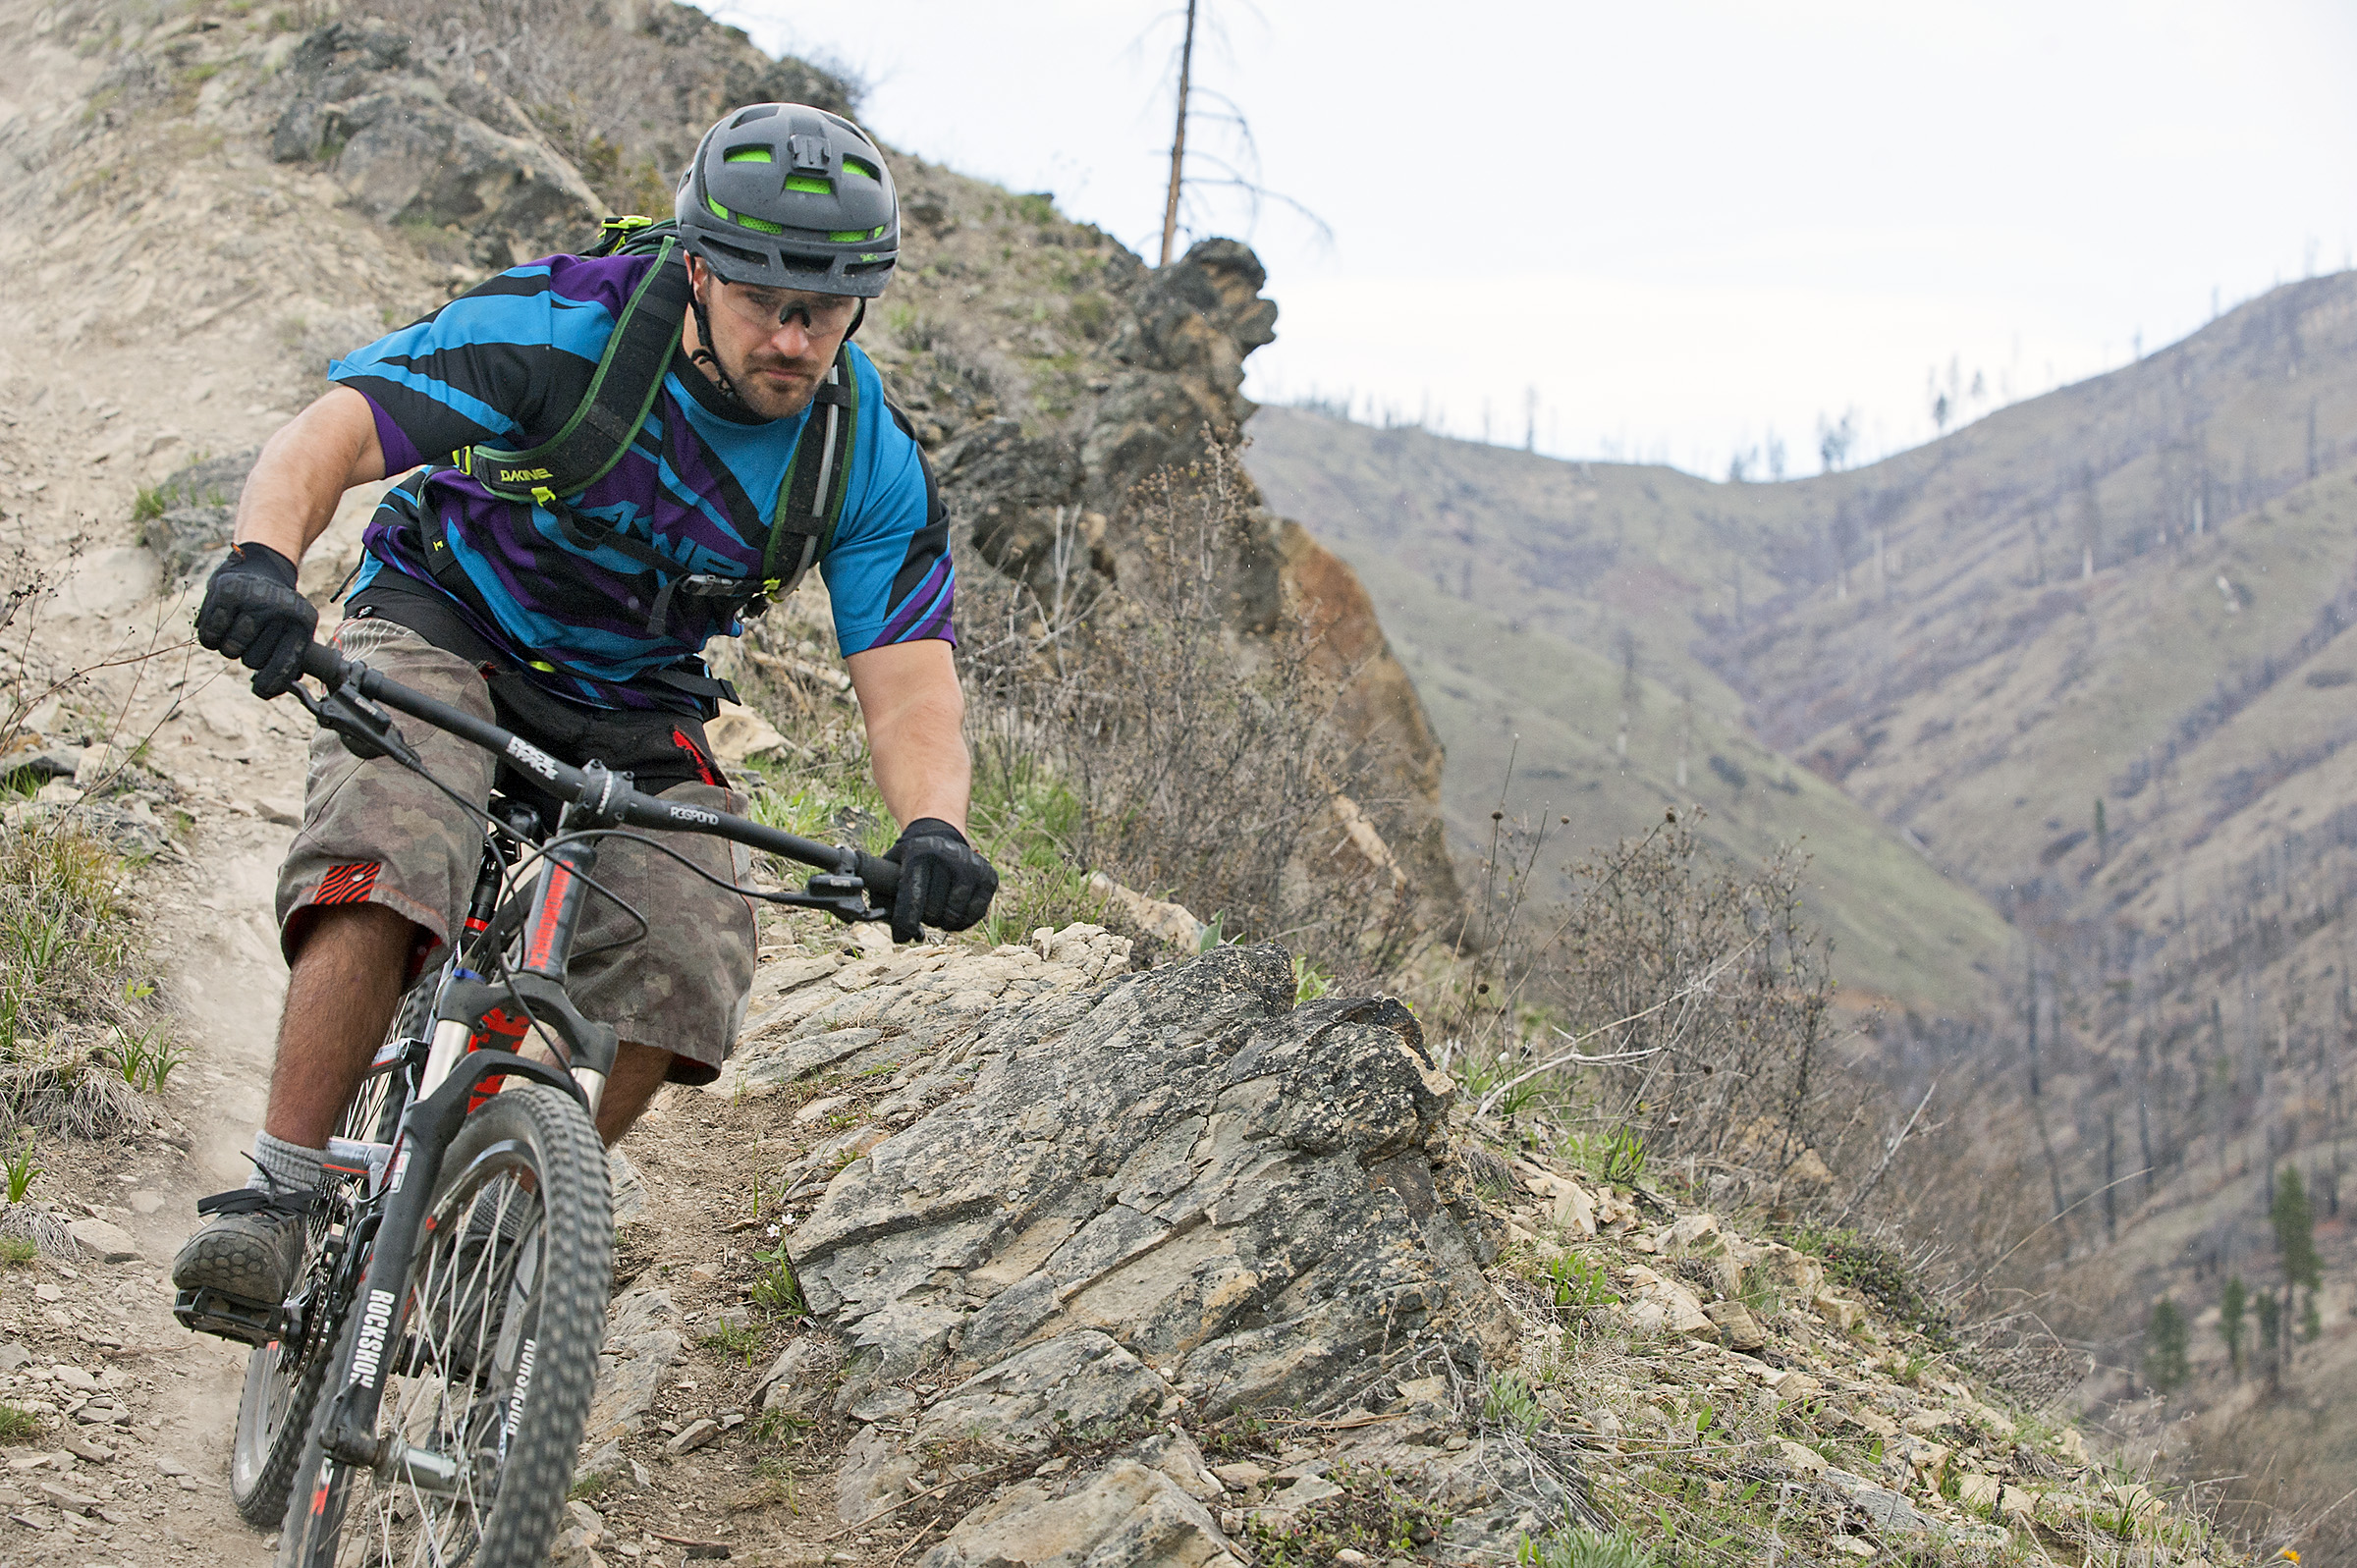 031115_Leavenworth_Bike_664